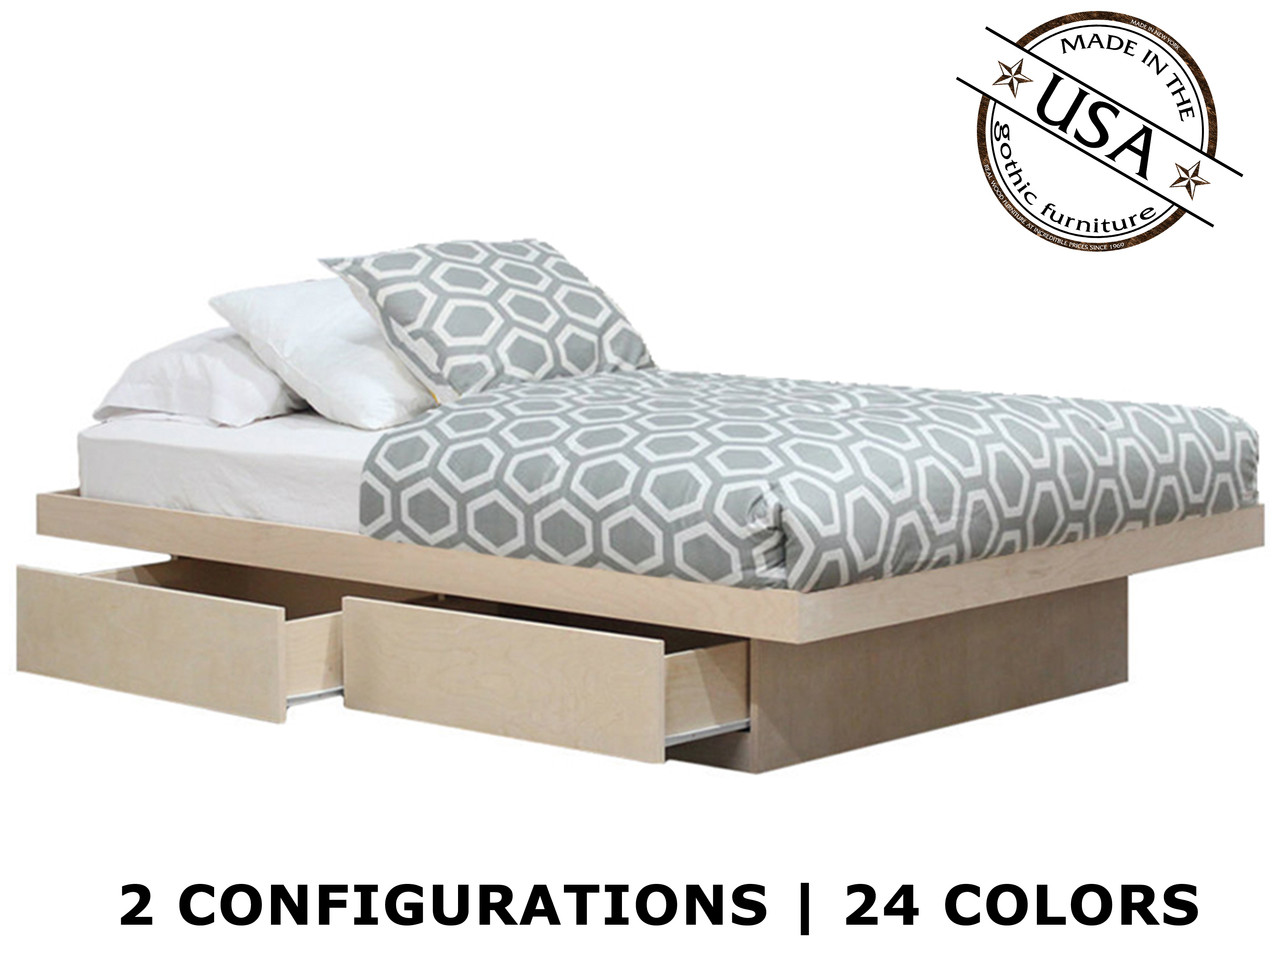 Full platform bed with 2 or 4 drawers on tracks birch wood